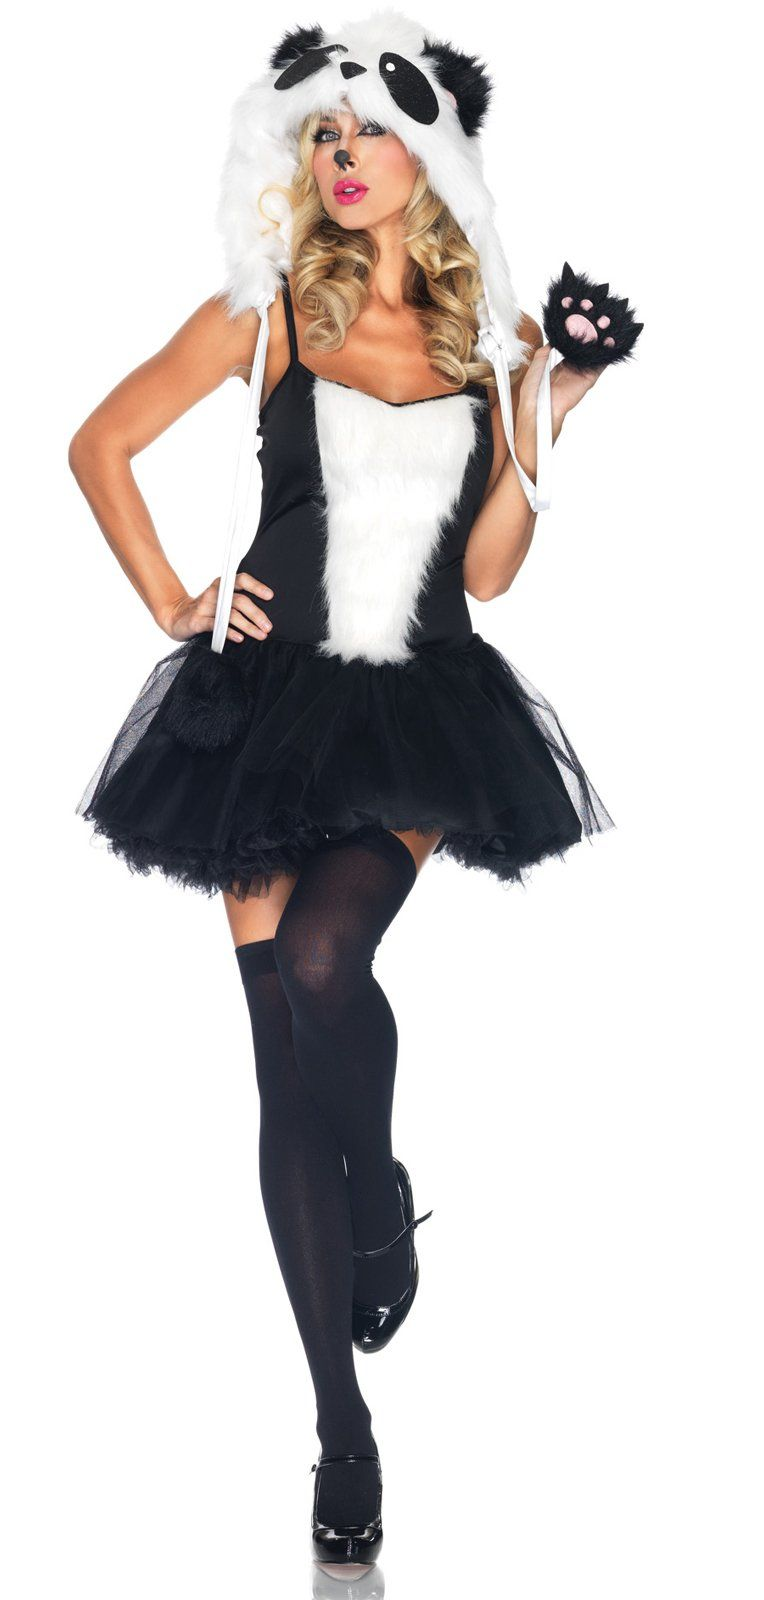 Consider, that adult bear costume panda recommend